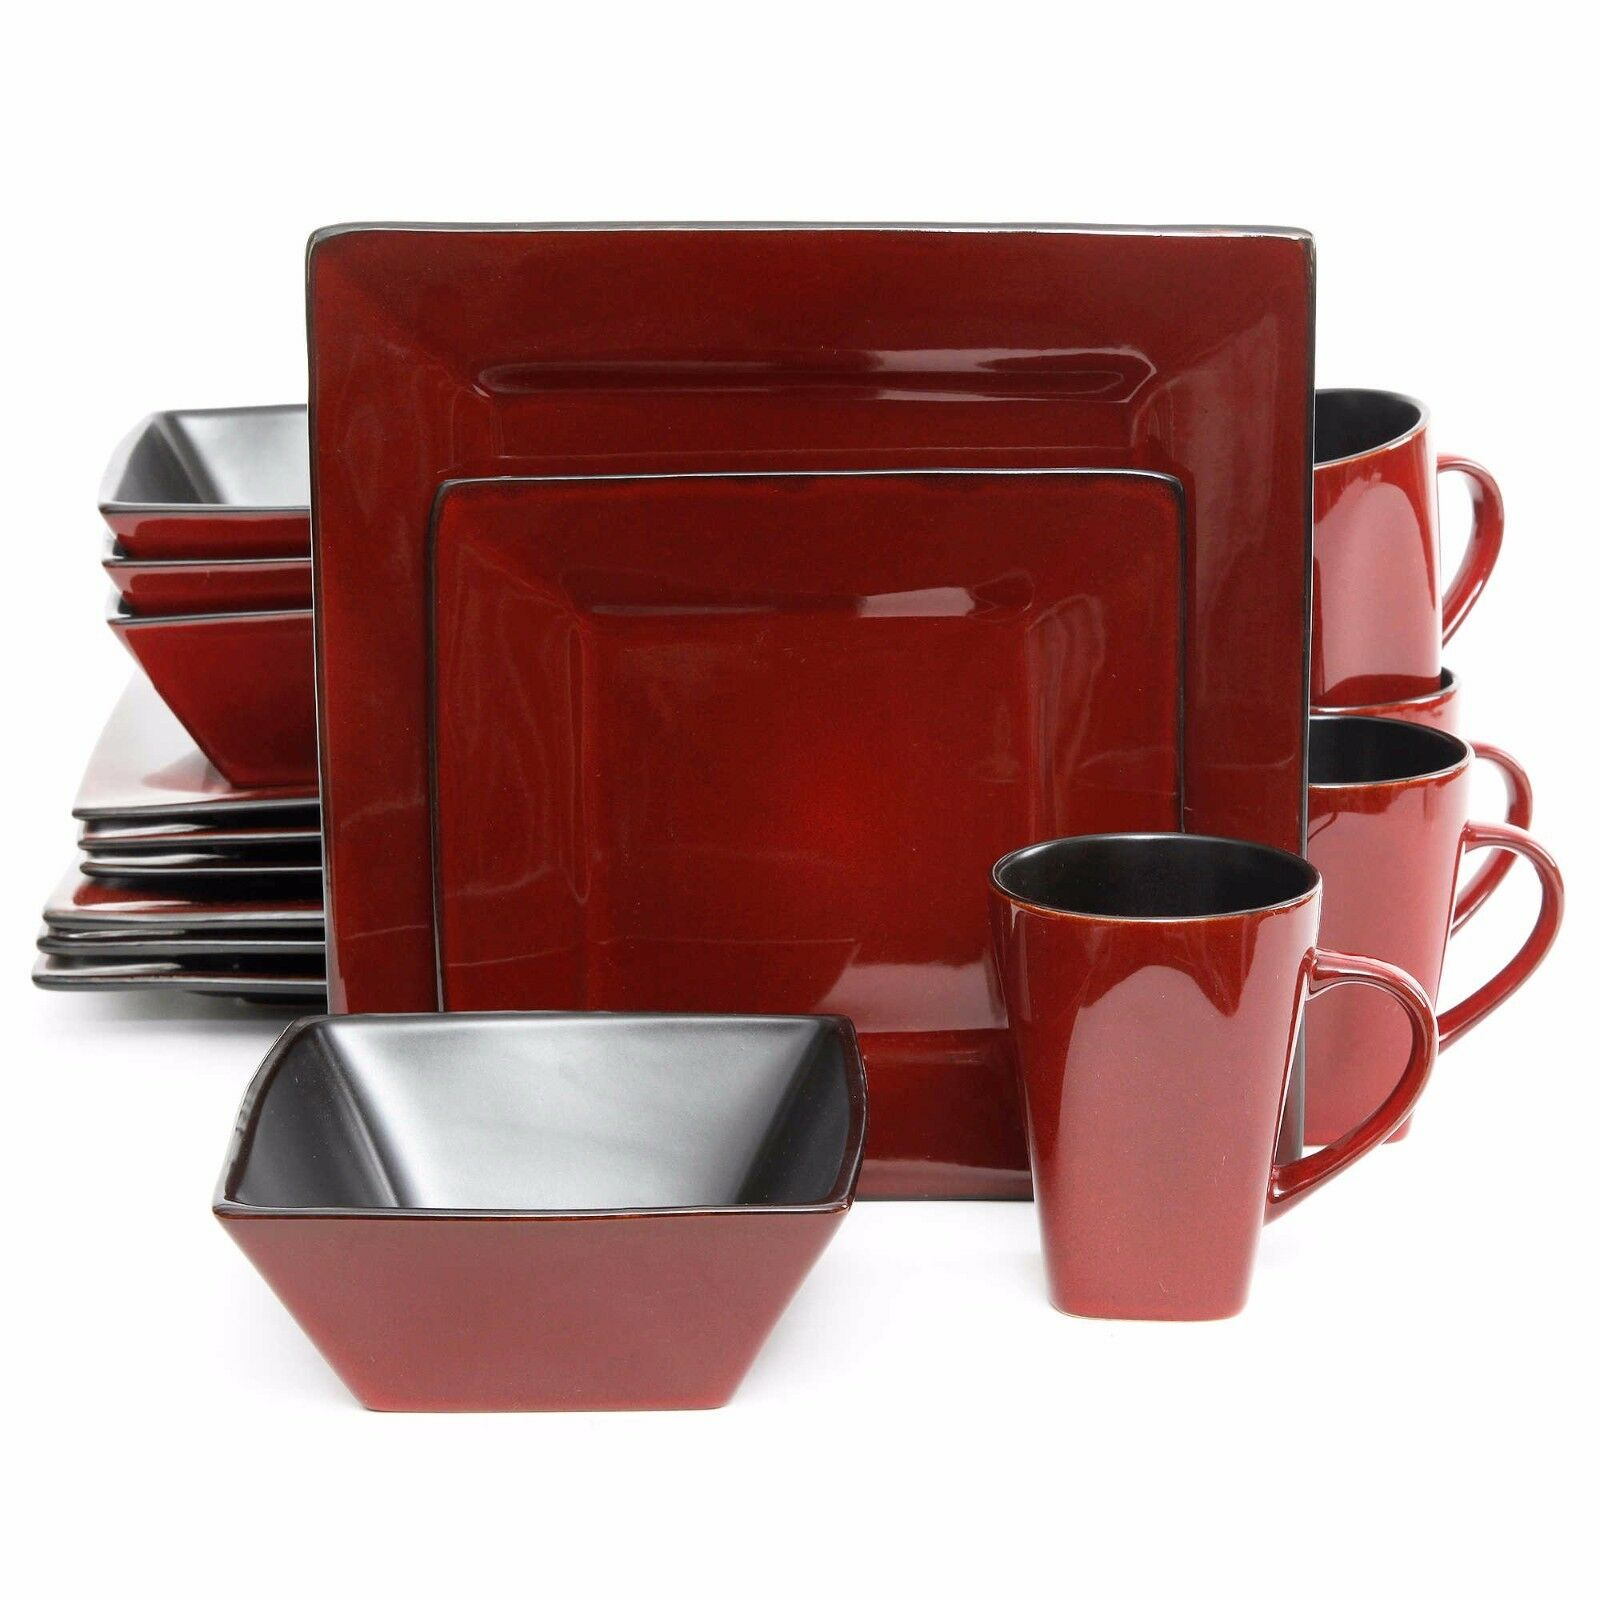 Red Square Dinnerware Set Dishes Black Kitchen Everyday